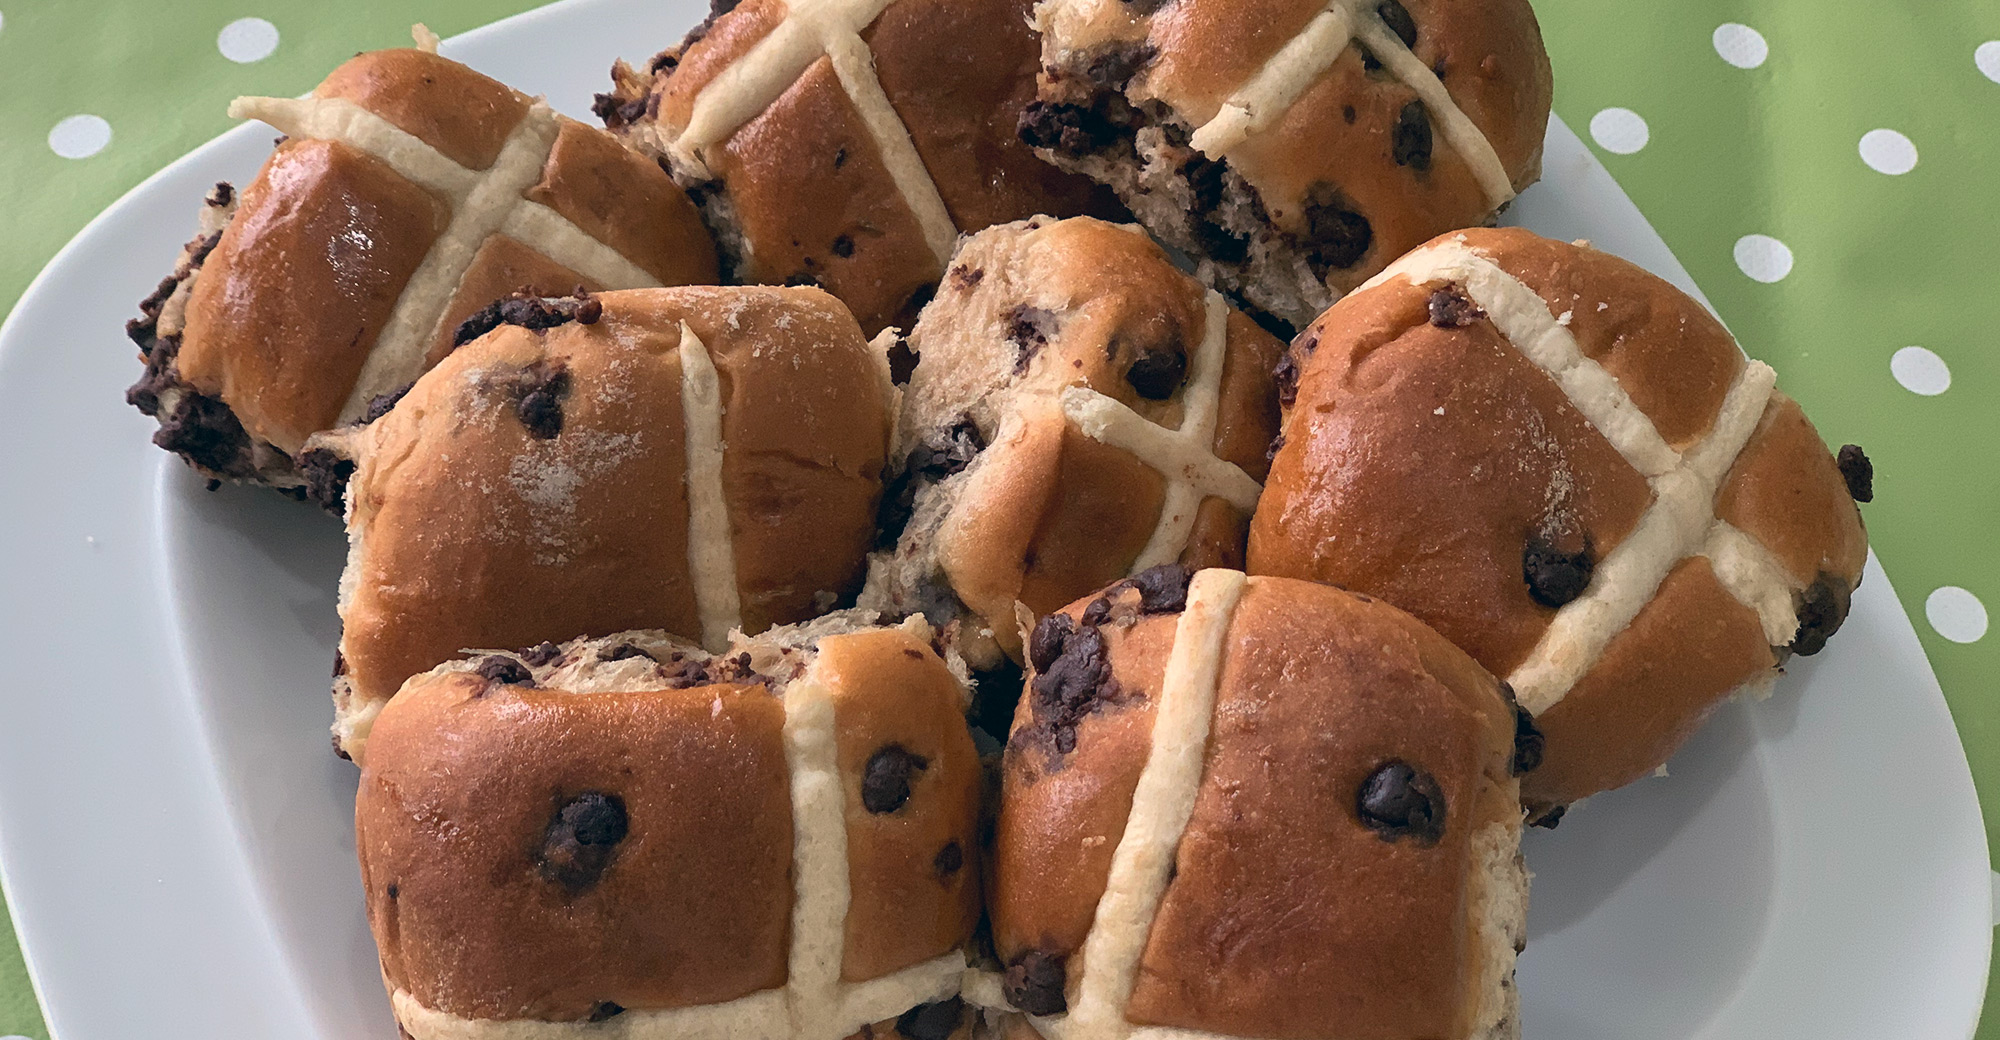 Hot cross buns banner image